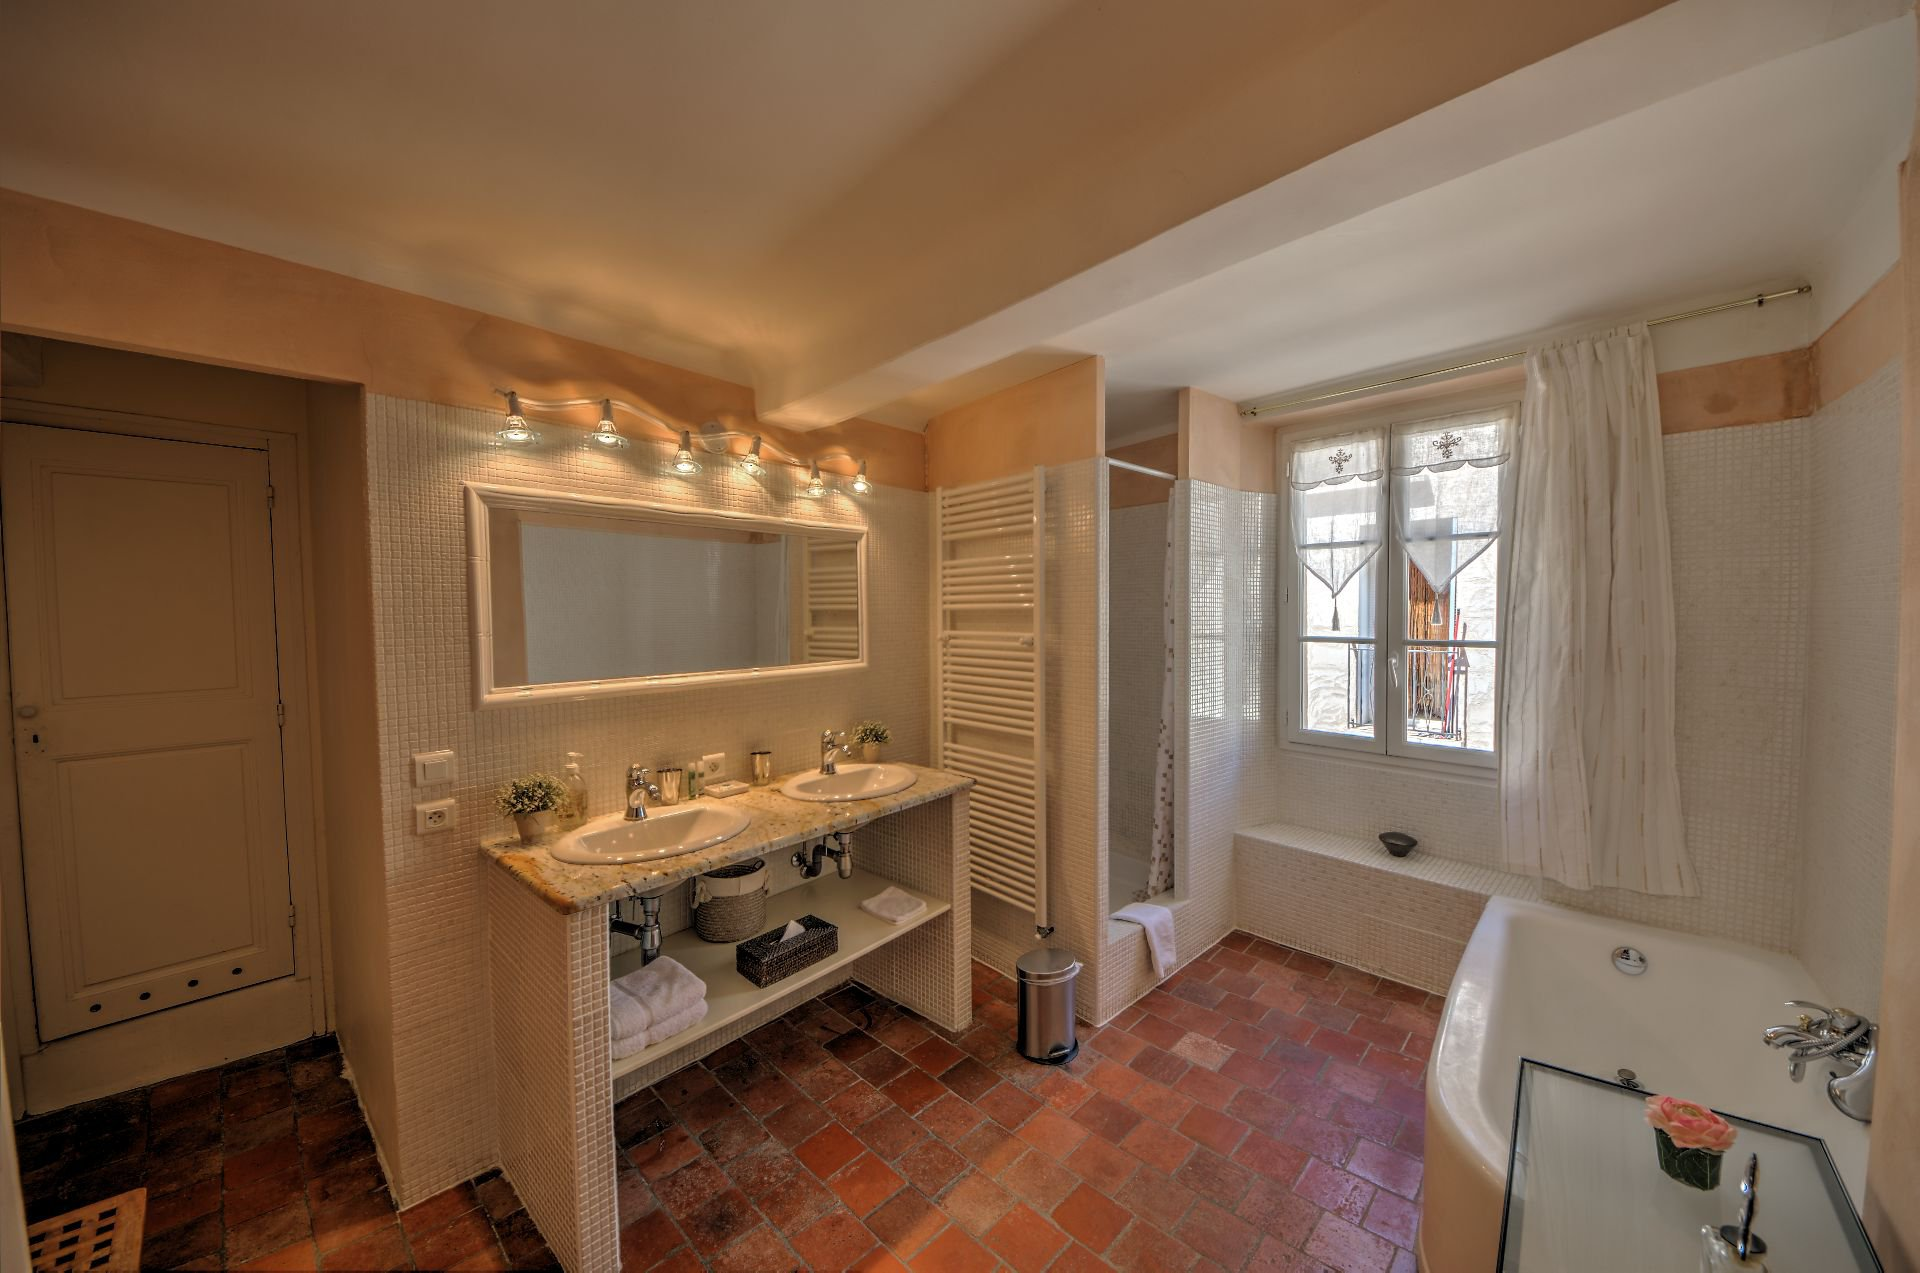 Bathroom of the Suite 3 in the guest house with garden and pool Rocbaron, Var, Provence